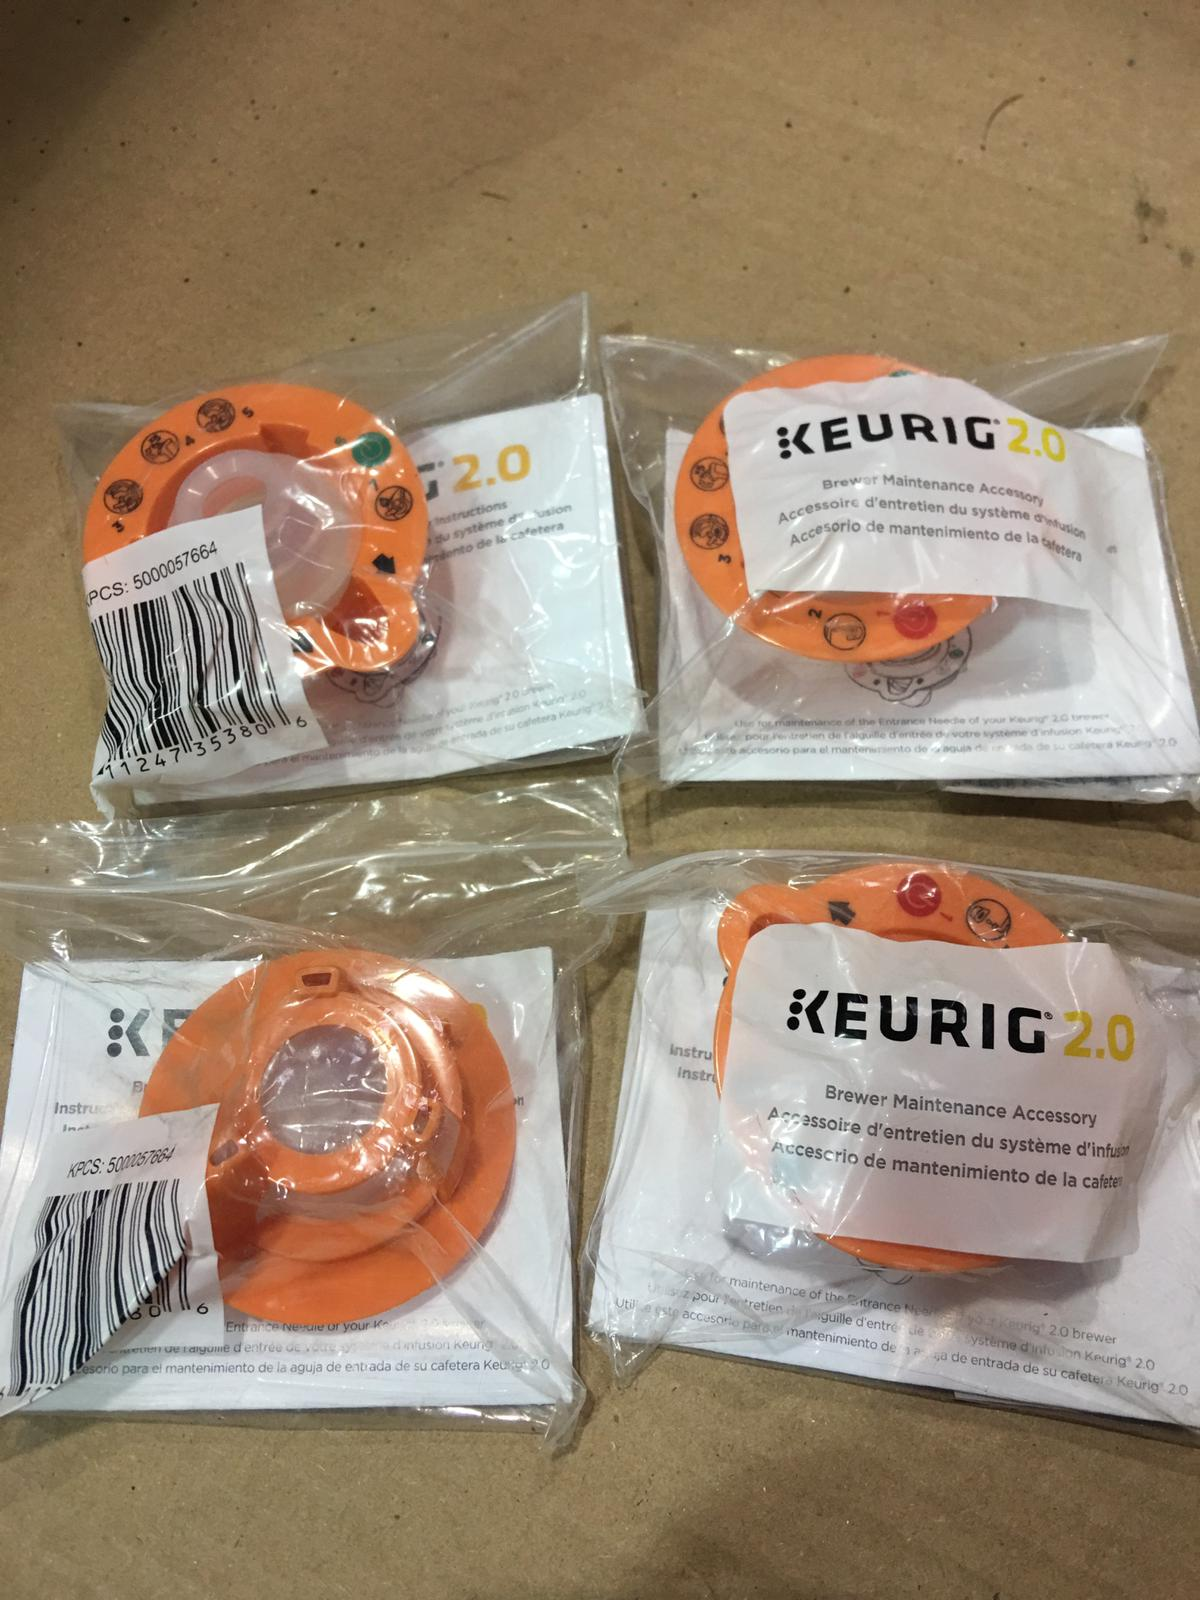 39884 - Keurig 2.0 Brewer Top Needle Cleaning Tool Kit USA